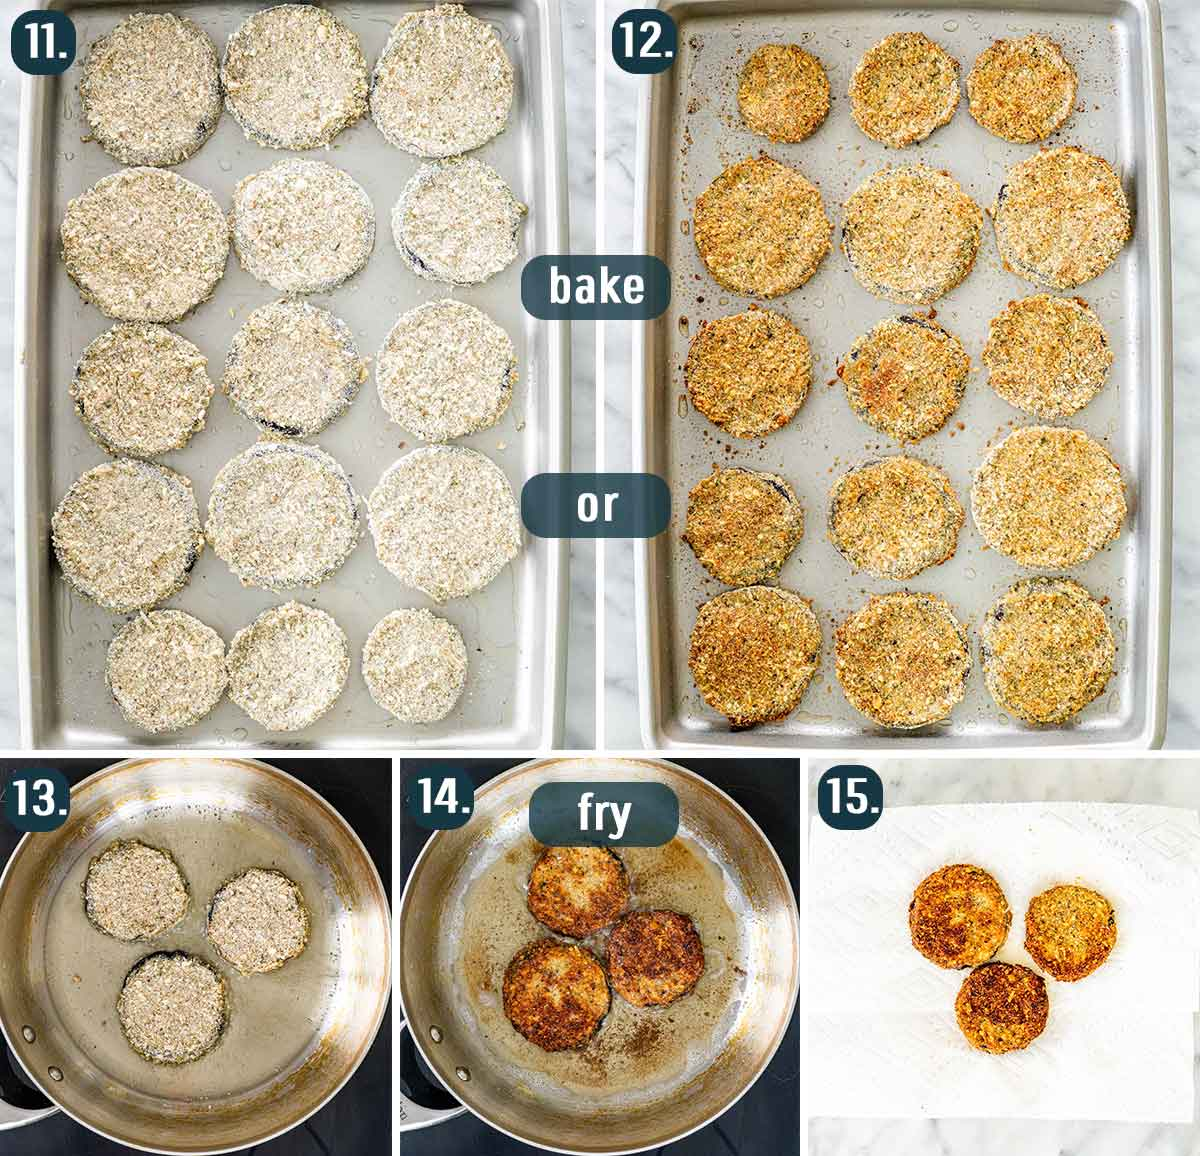 process shots showing how to bake the eggplant rounds for eggplant parmesan or how to fry them